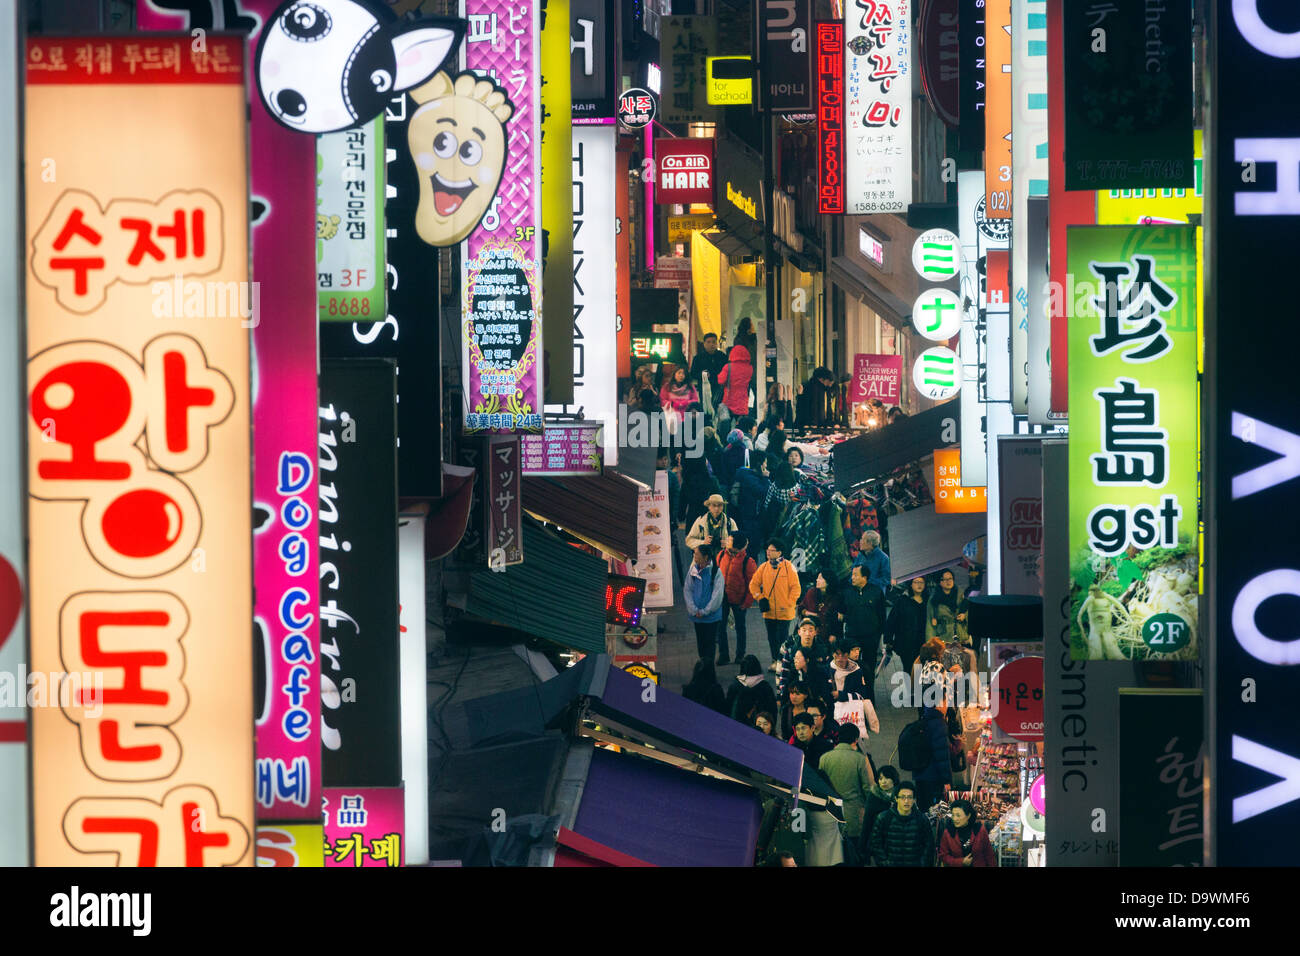 Neon lights in the restaurant and entertainment district of Myeong-dong, Seoul, South Korea, Asia - Stock Image